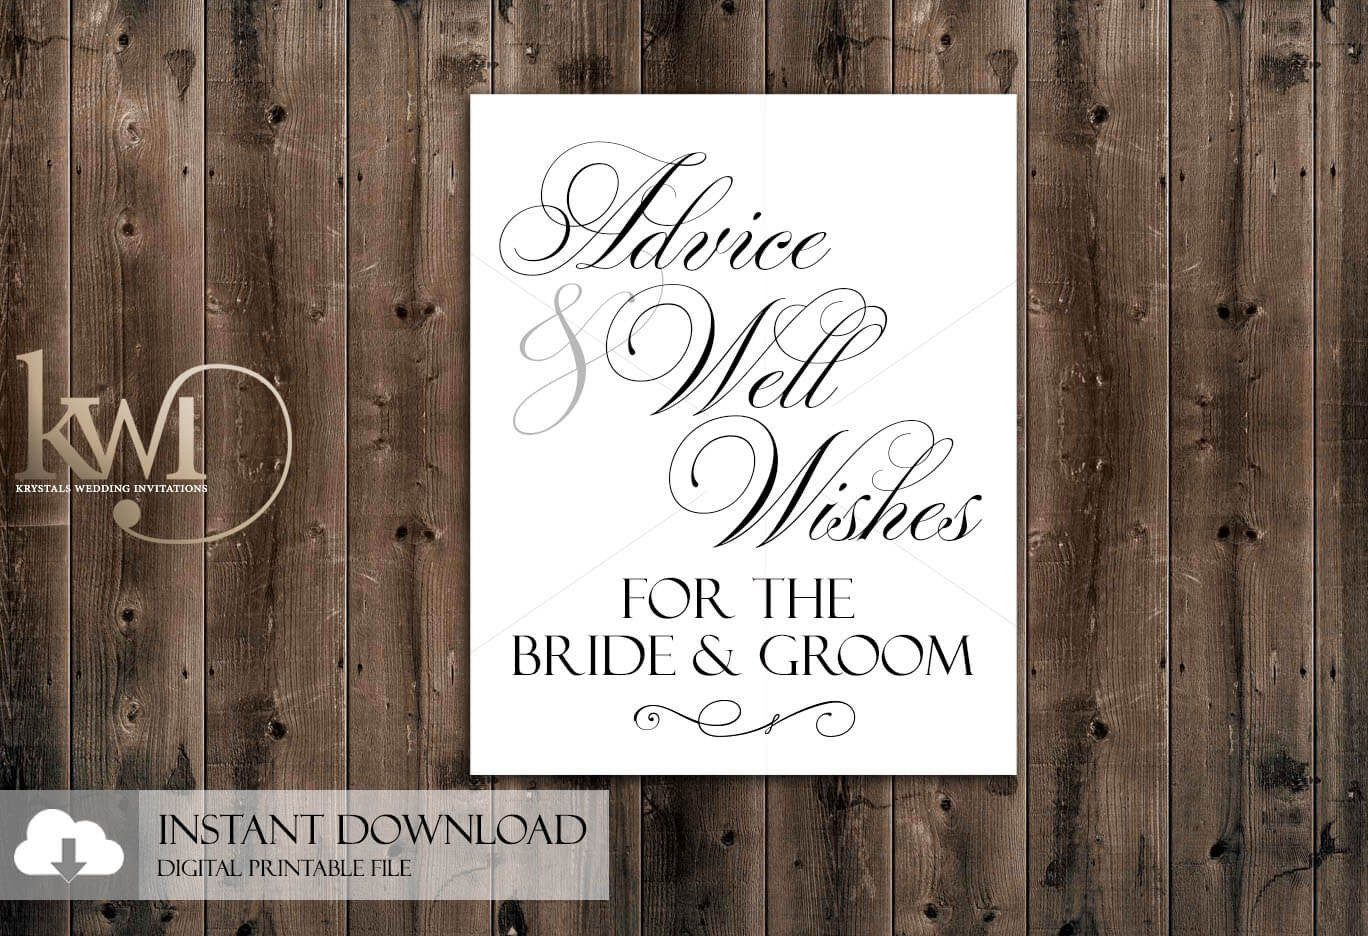 DIY Printables - 8x10 - Advice & Well Wishes for the Bride and Groom Sign - Krystals Wedding Invitations